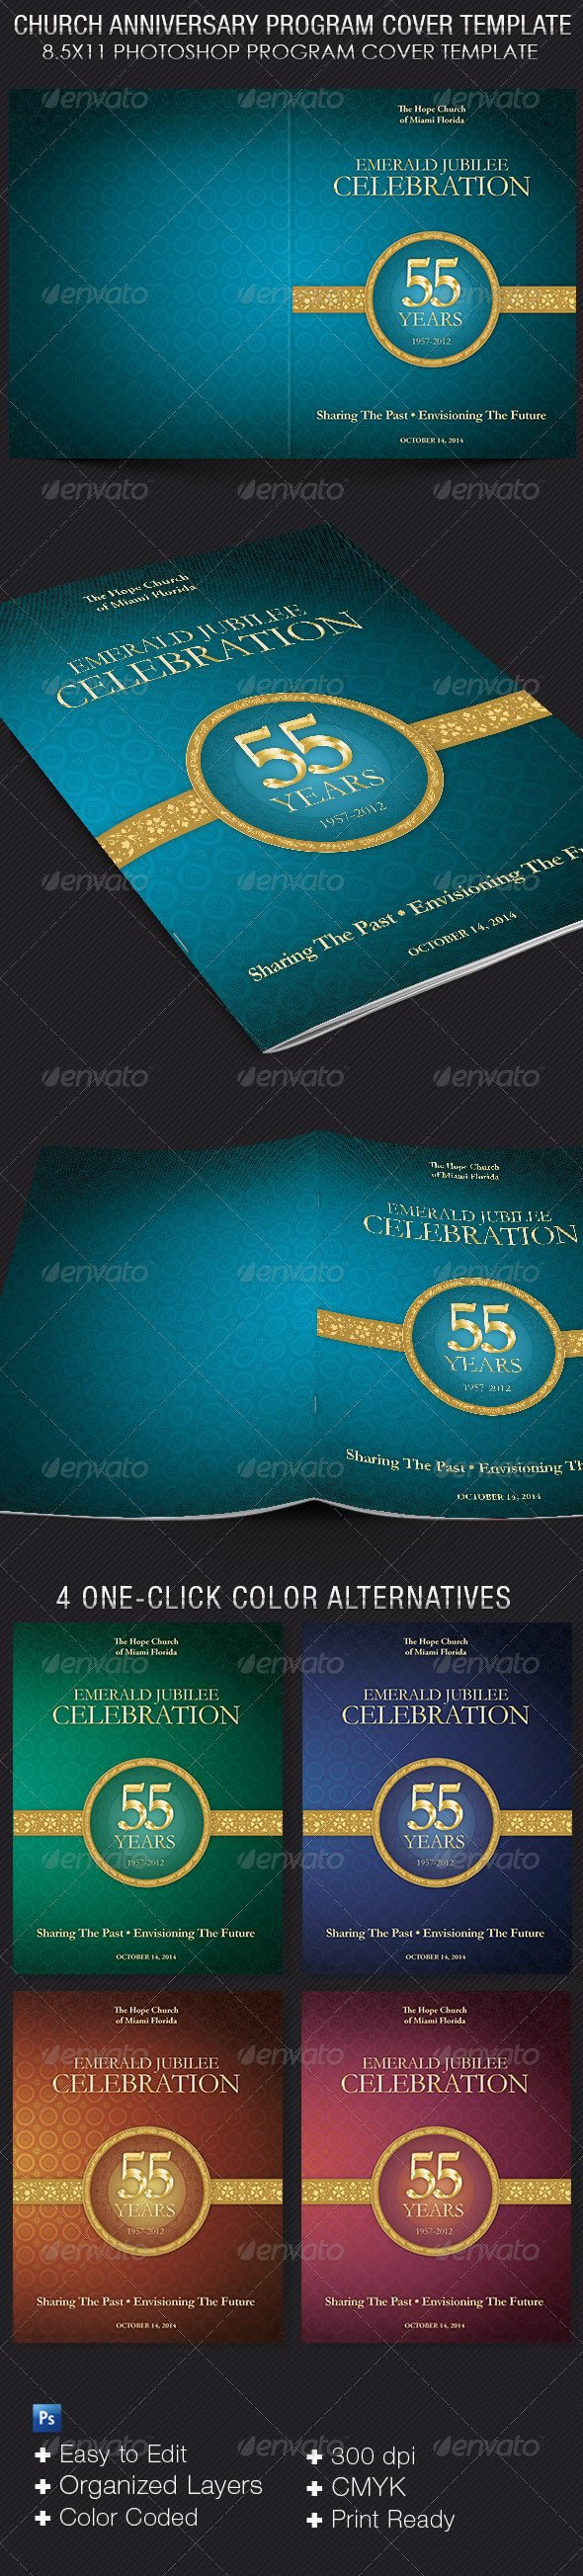 Church Anniversary Program Template Church Anniversary Program Cover Template by 4cgraphic